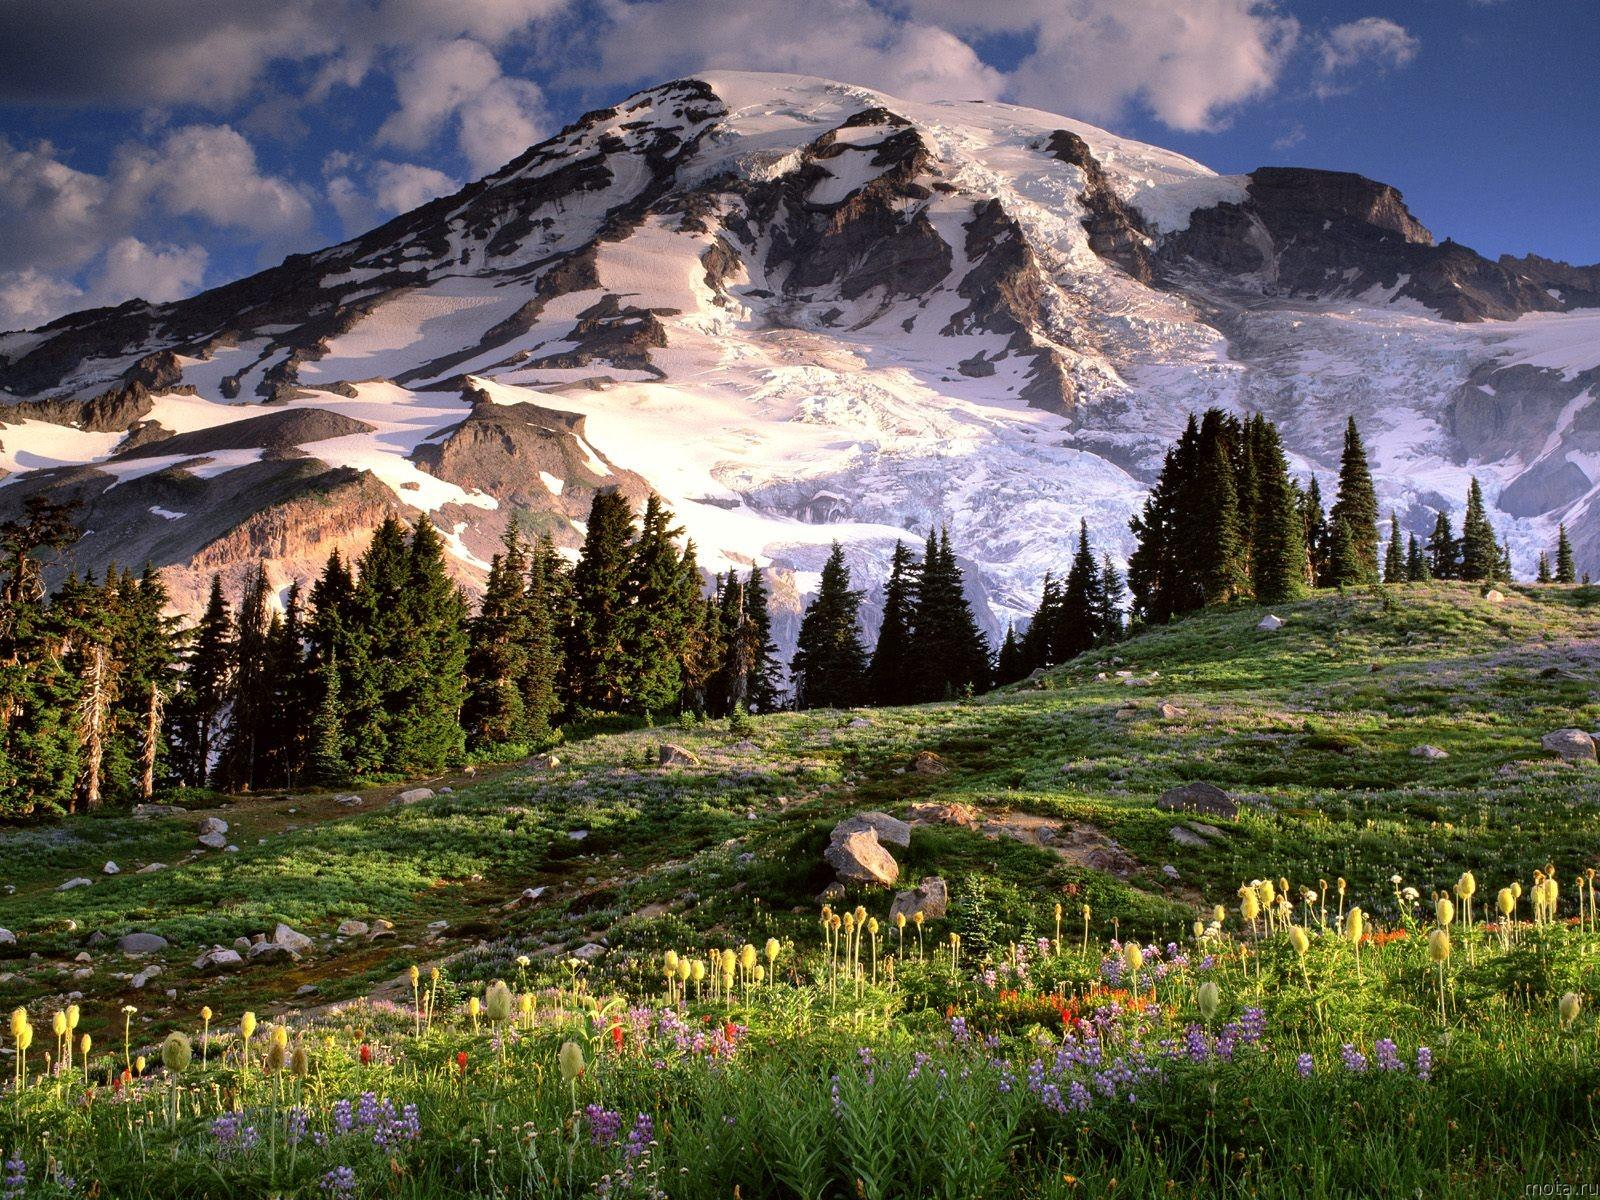 Download Wallpaper Blooming Wildflowers and Mount Rainier 1600x1200